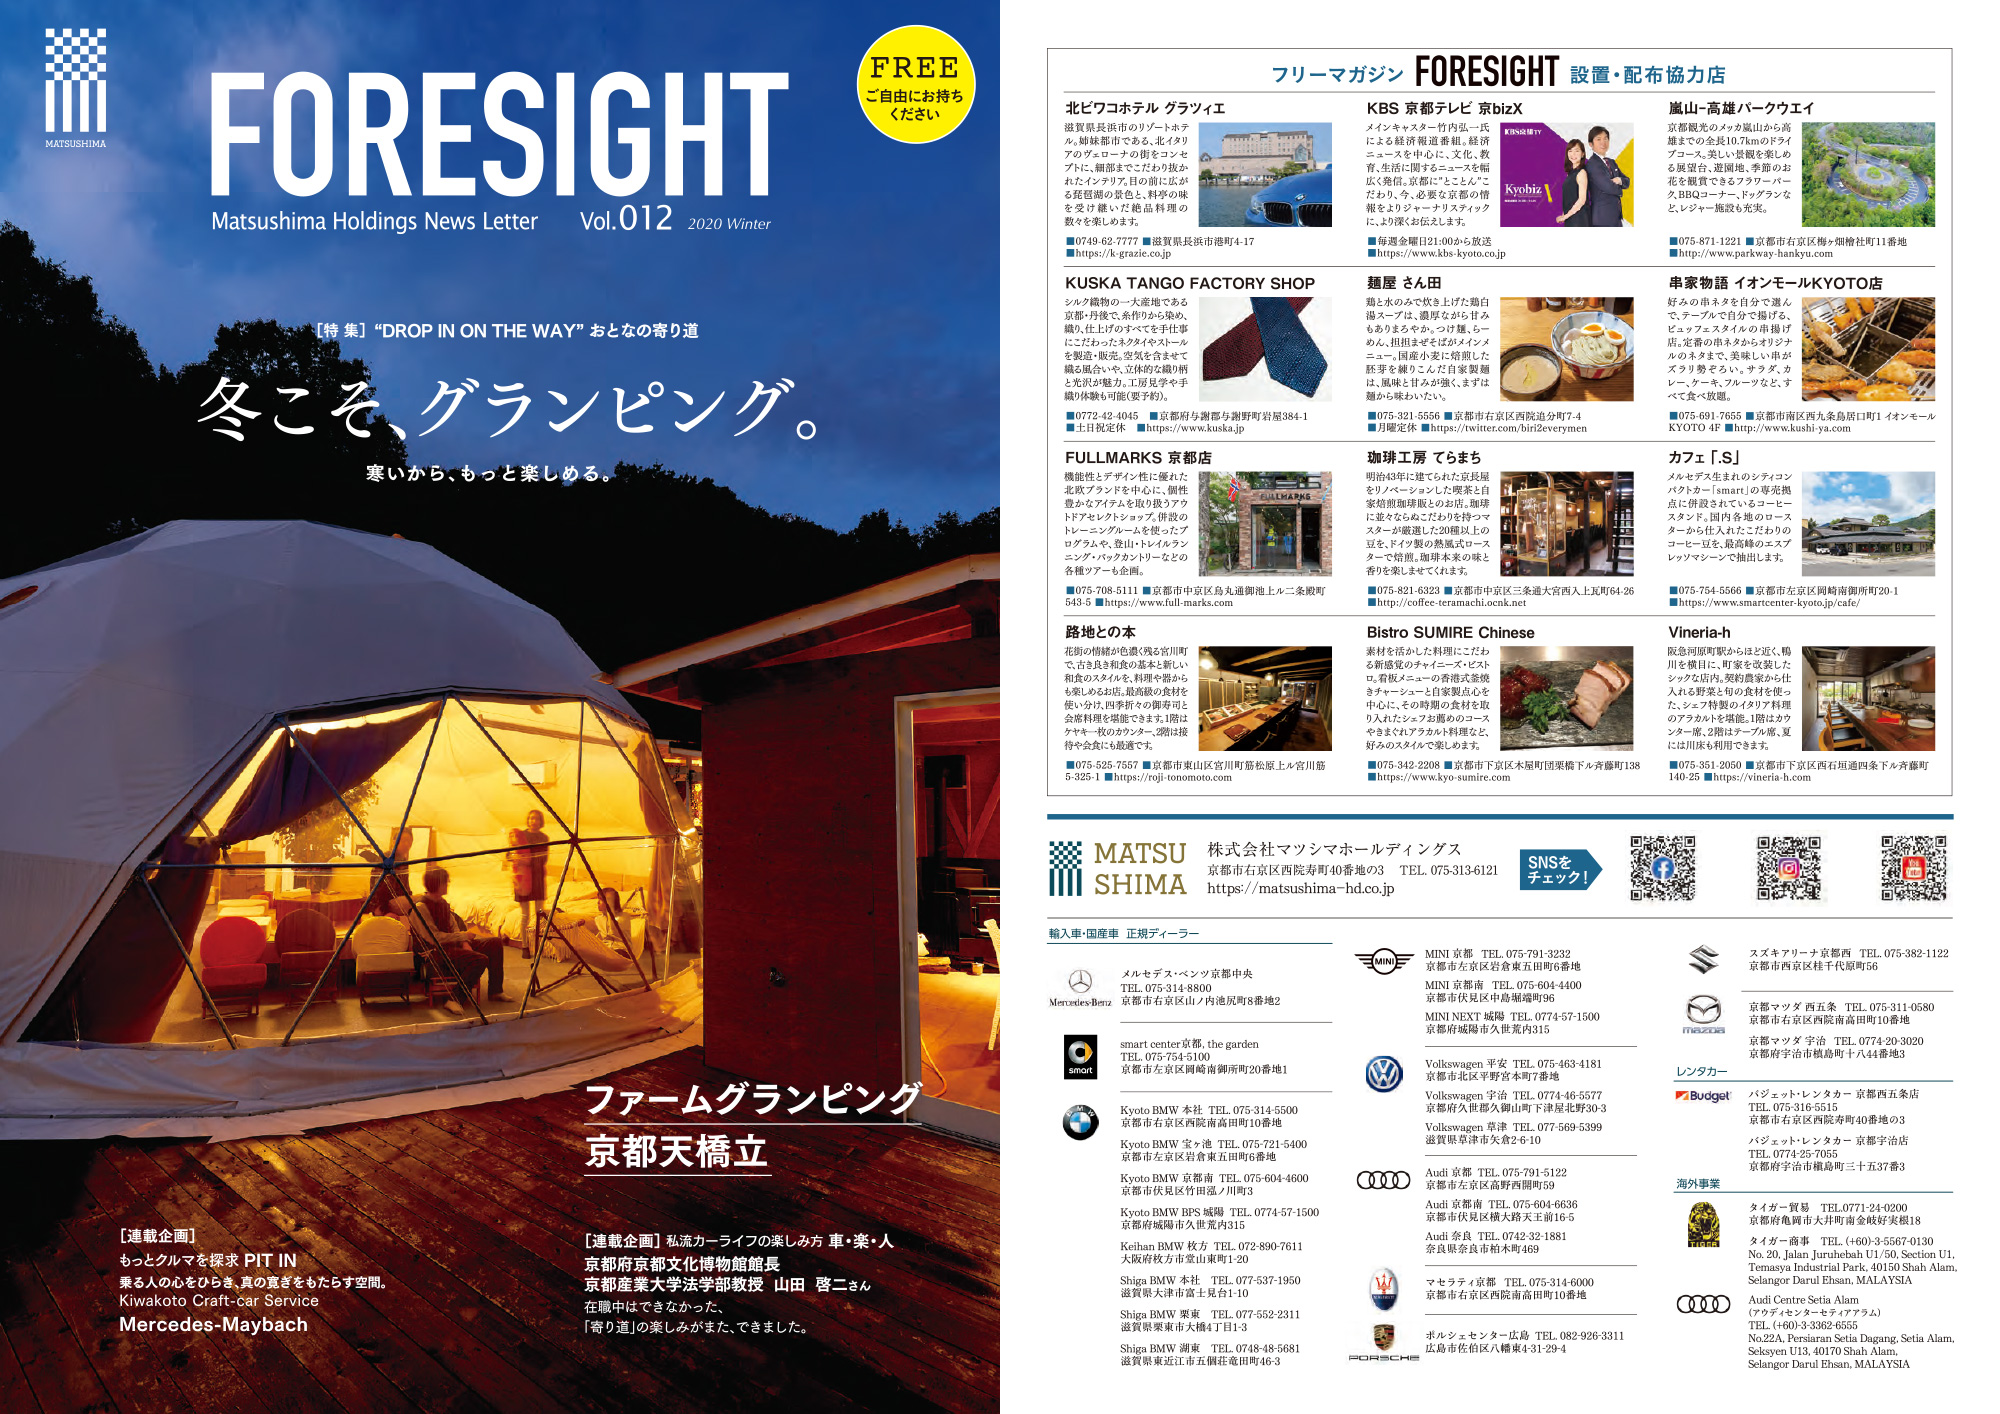 FORESIGHT vol.12 P1&P8